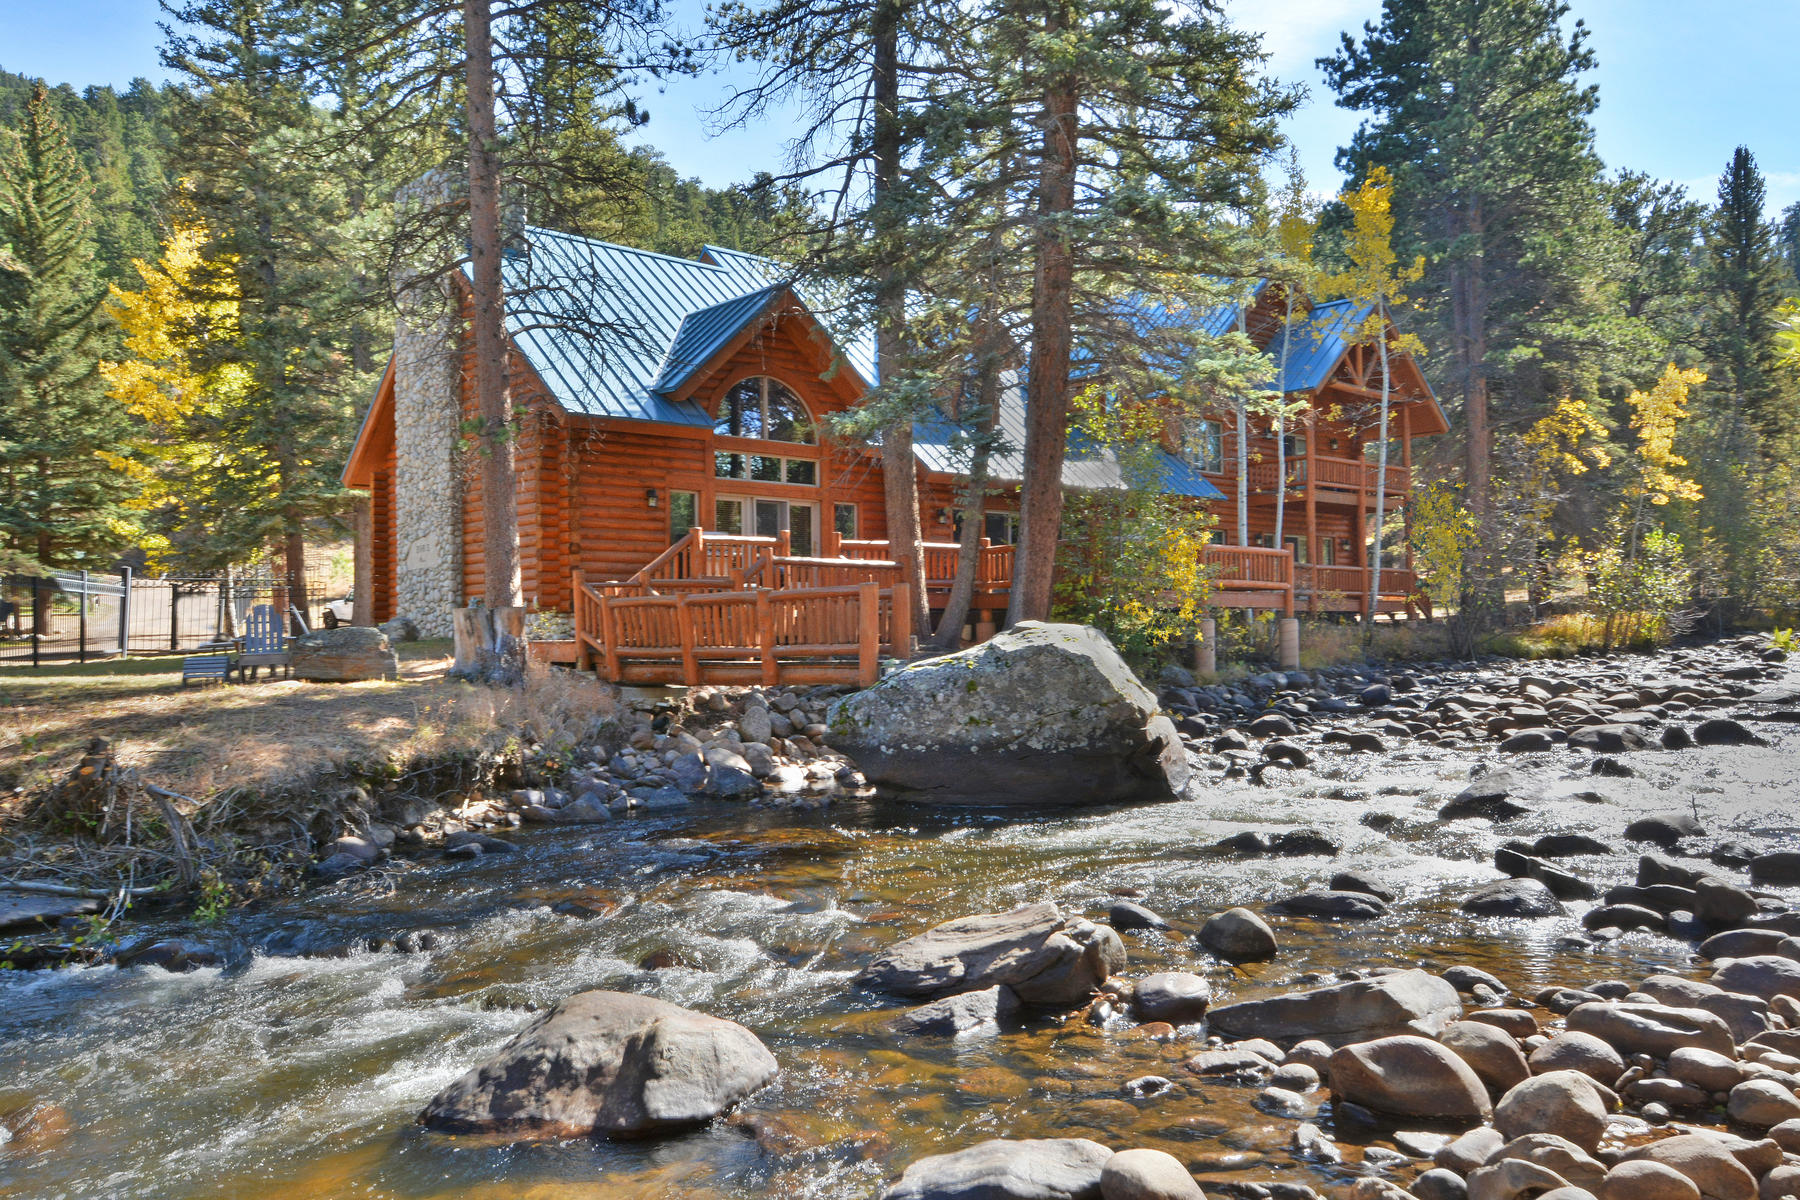 Casa Unifamiliar por un Venta en Majestic Log Cabin 2222 Highway 66 Estes Park, Colorado 80517 Estados Unidos